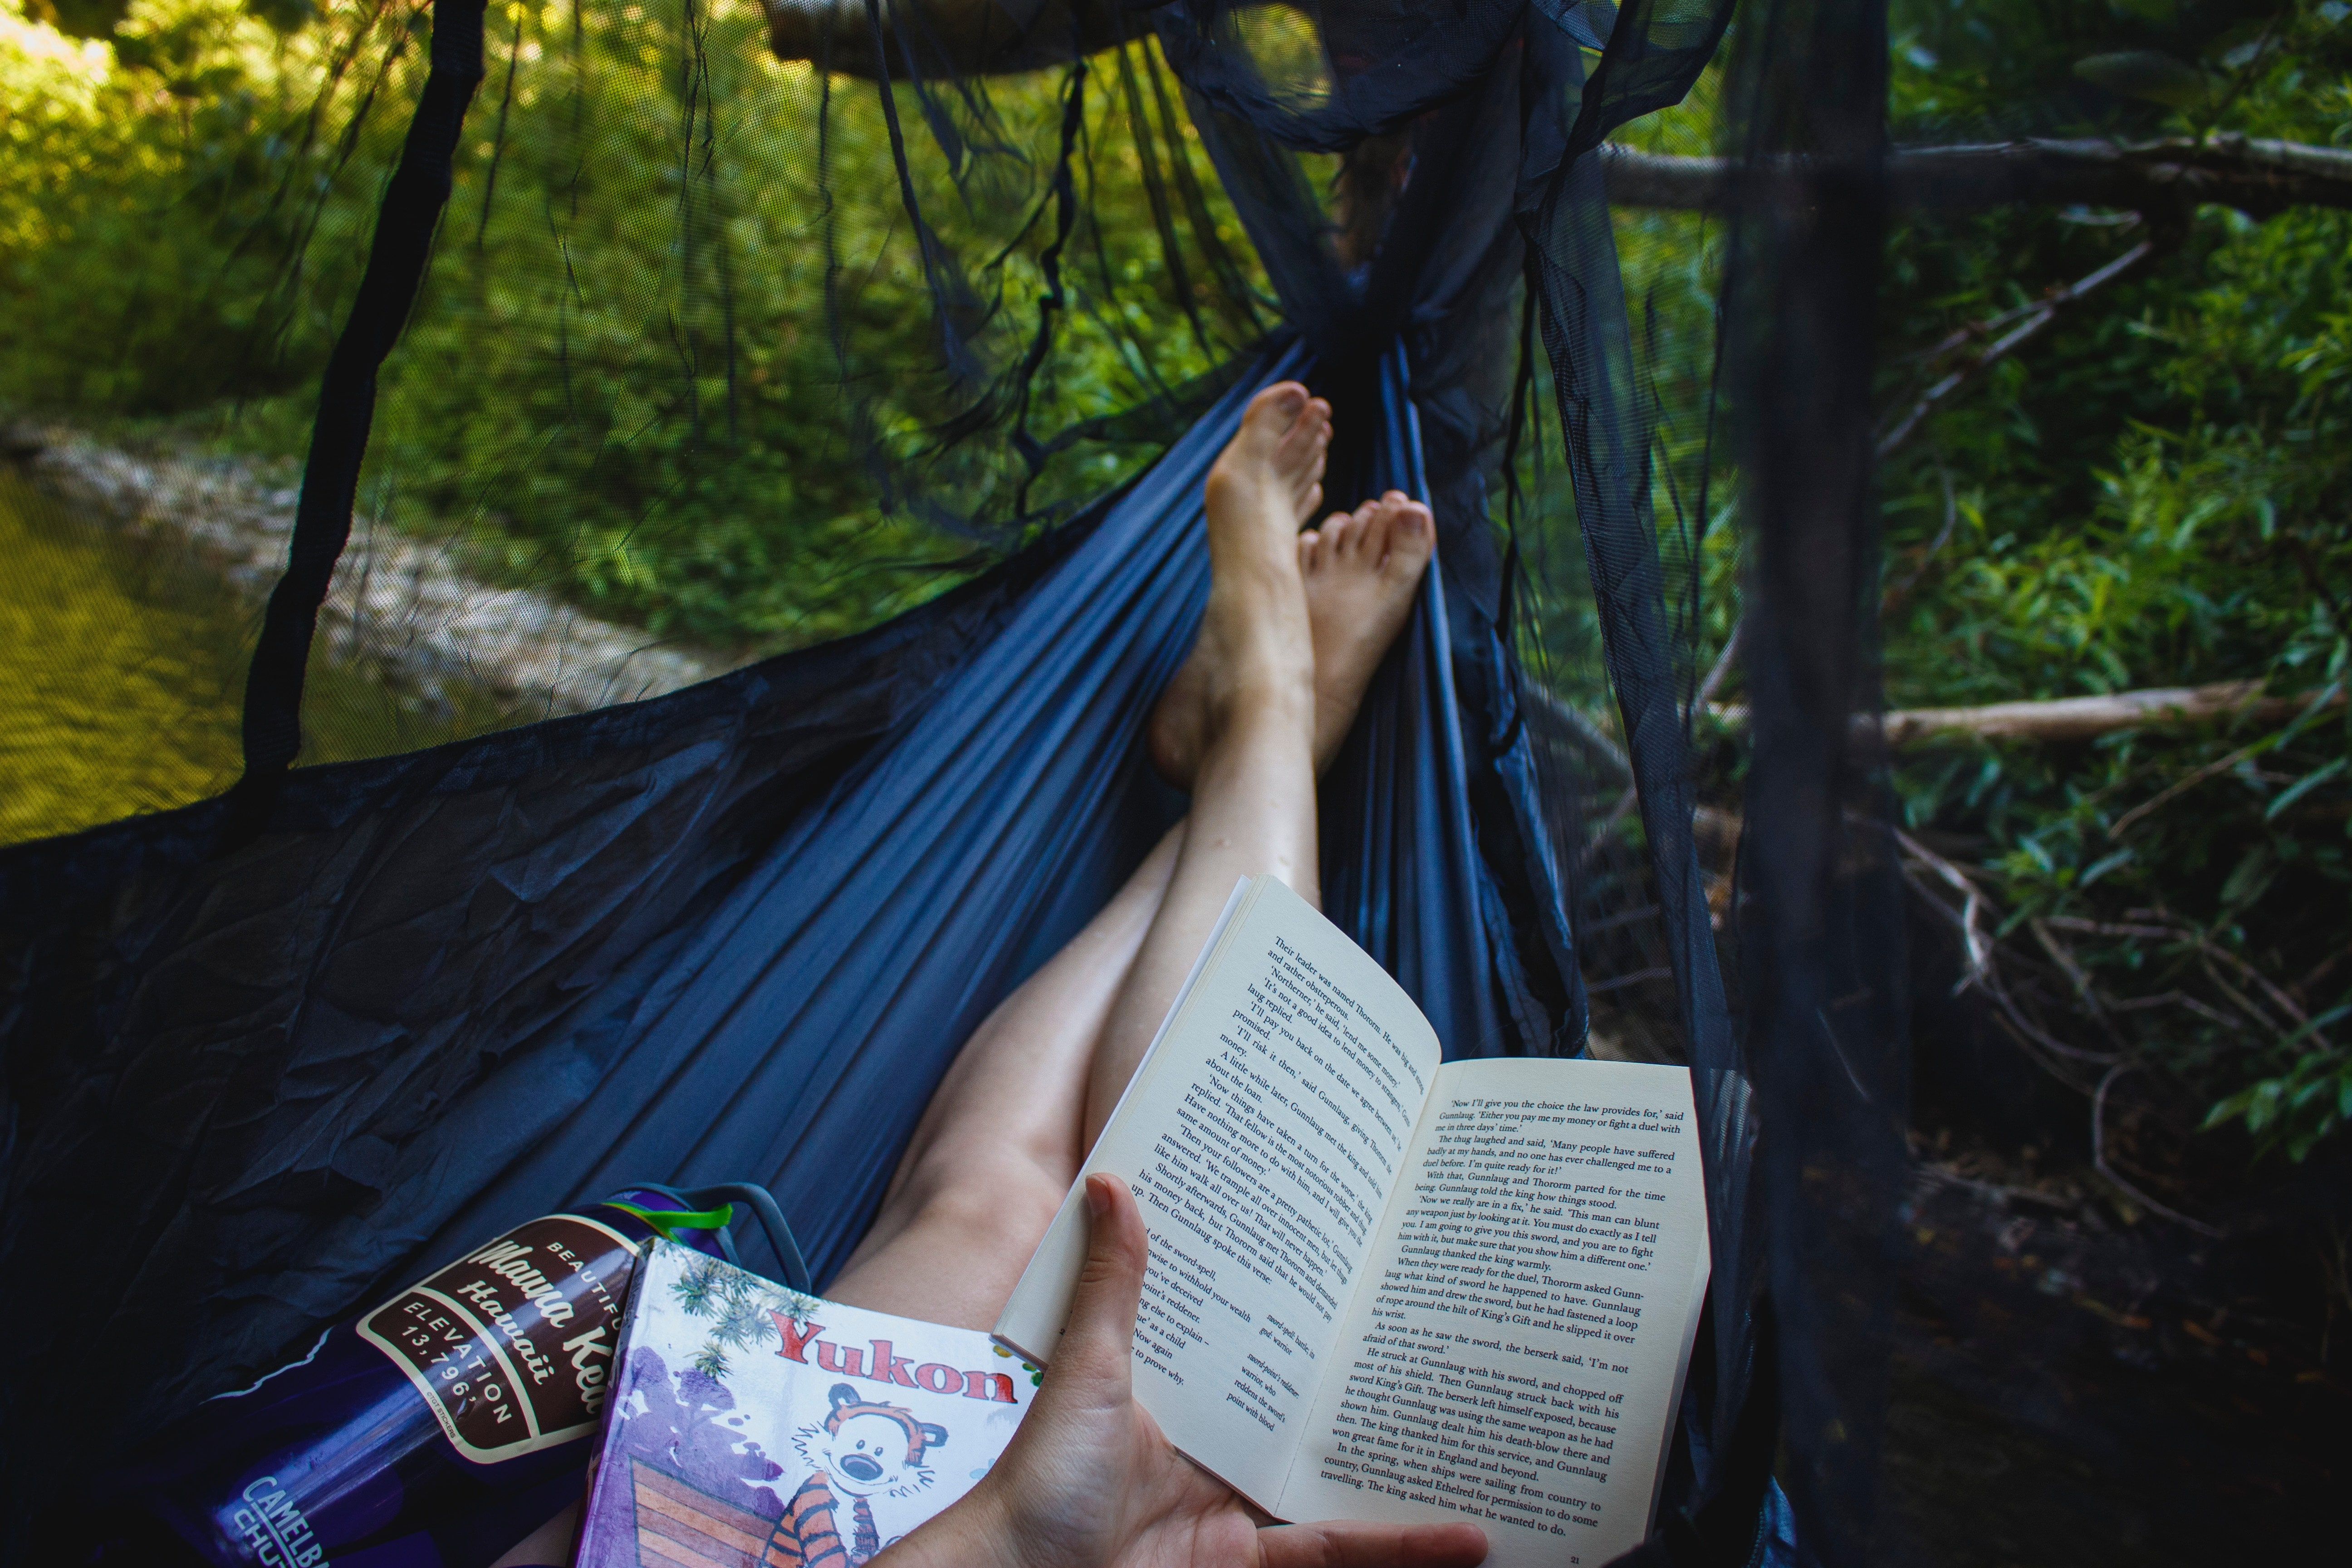 Hammock camping and reading a book